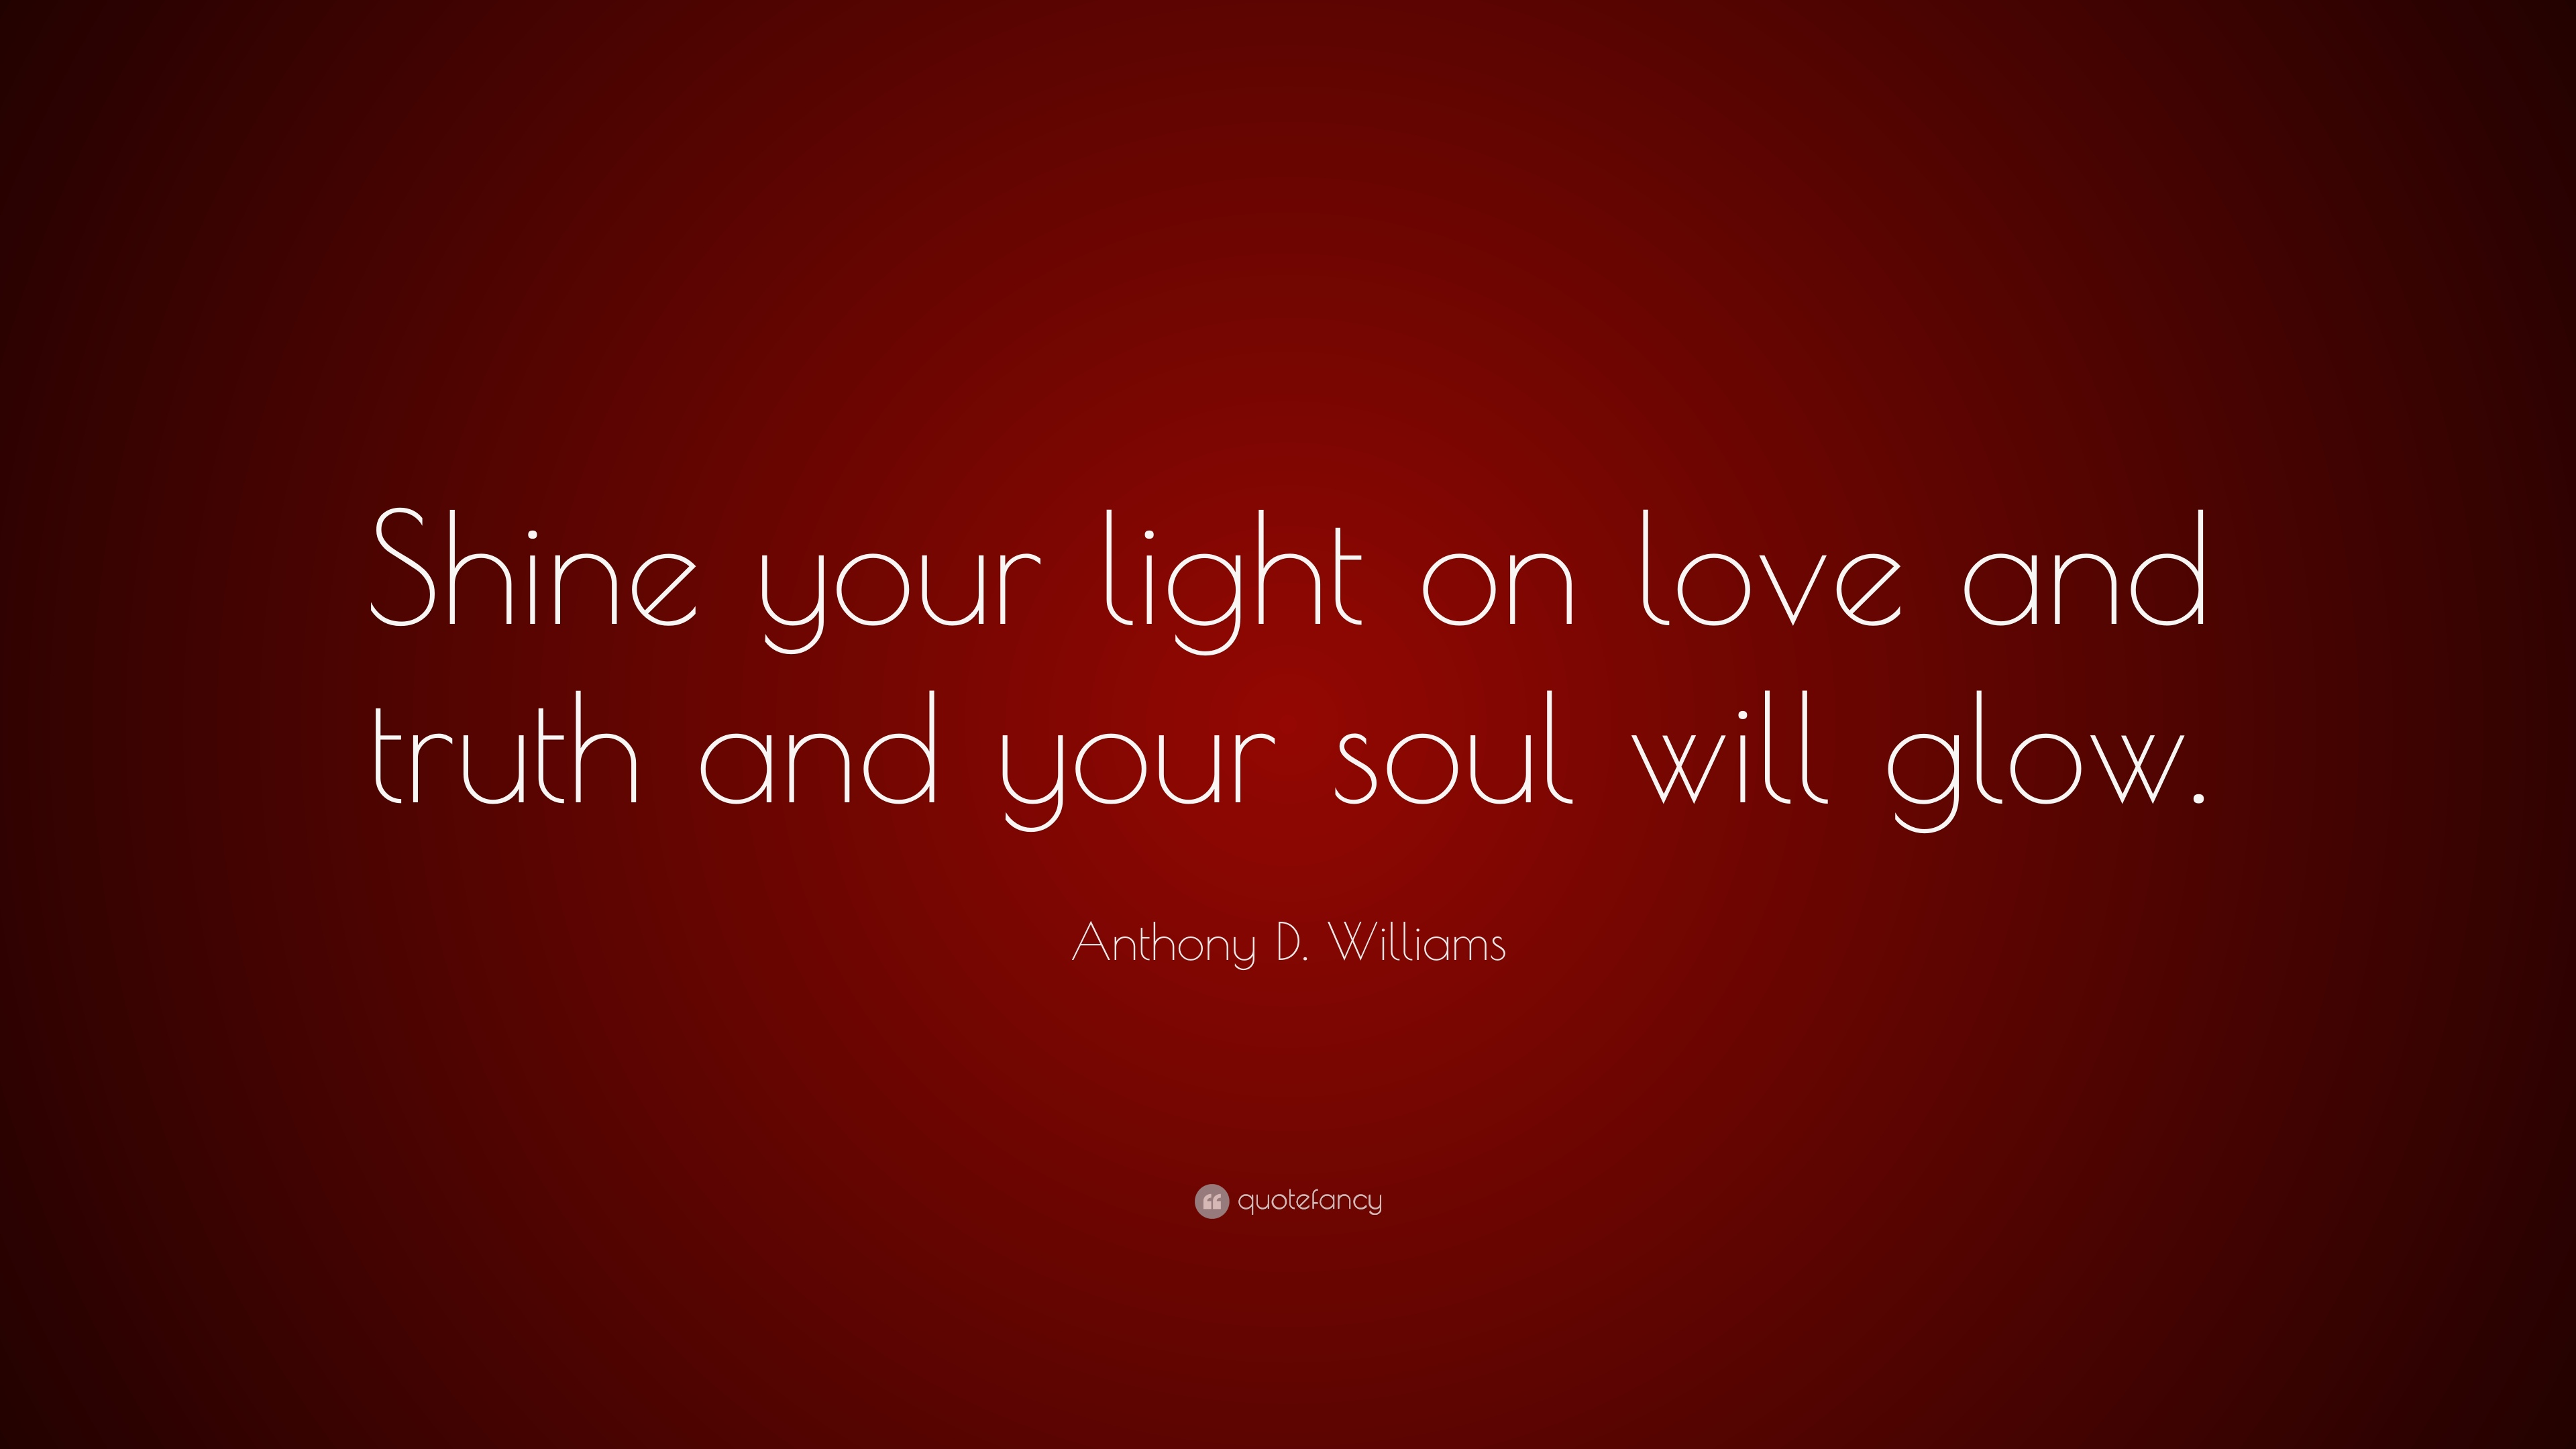 Anthony D Williams Quote Shine Your Light On Love And Truth And